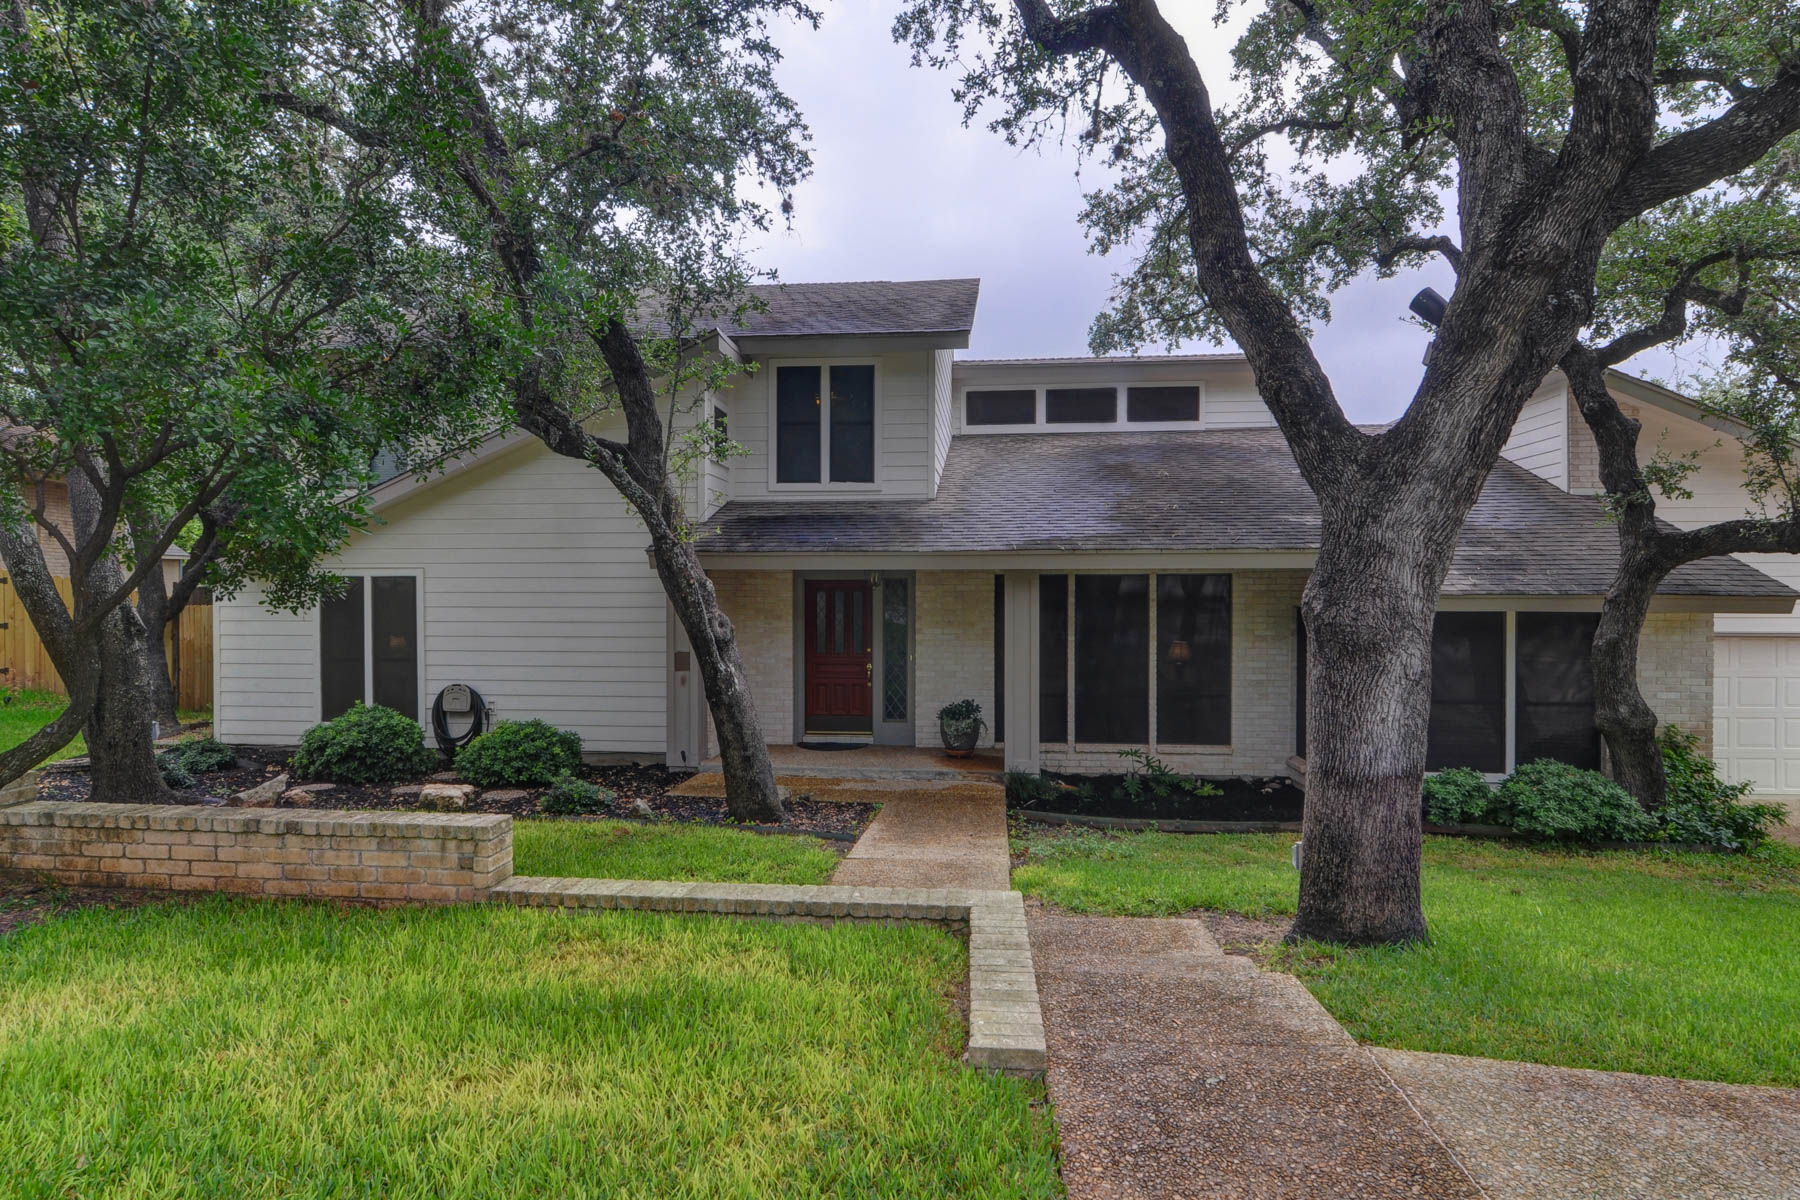 Single Family Home for Sale at Beautifully Maintained Home in Hunters Creek 13026 Hunters Breeze San Antonio, Texas 78230 United States